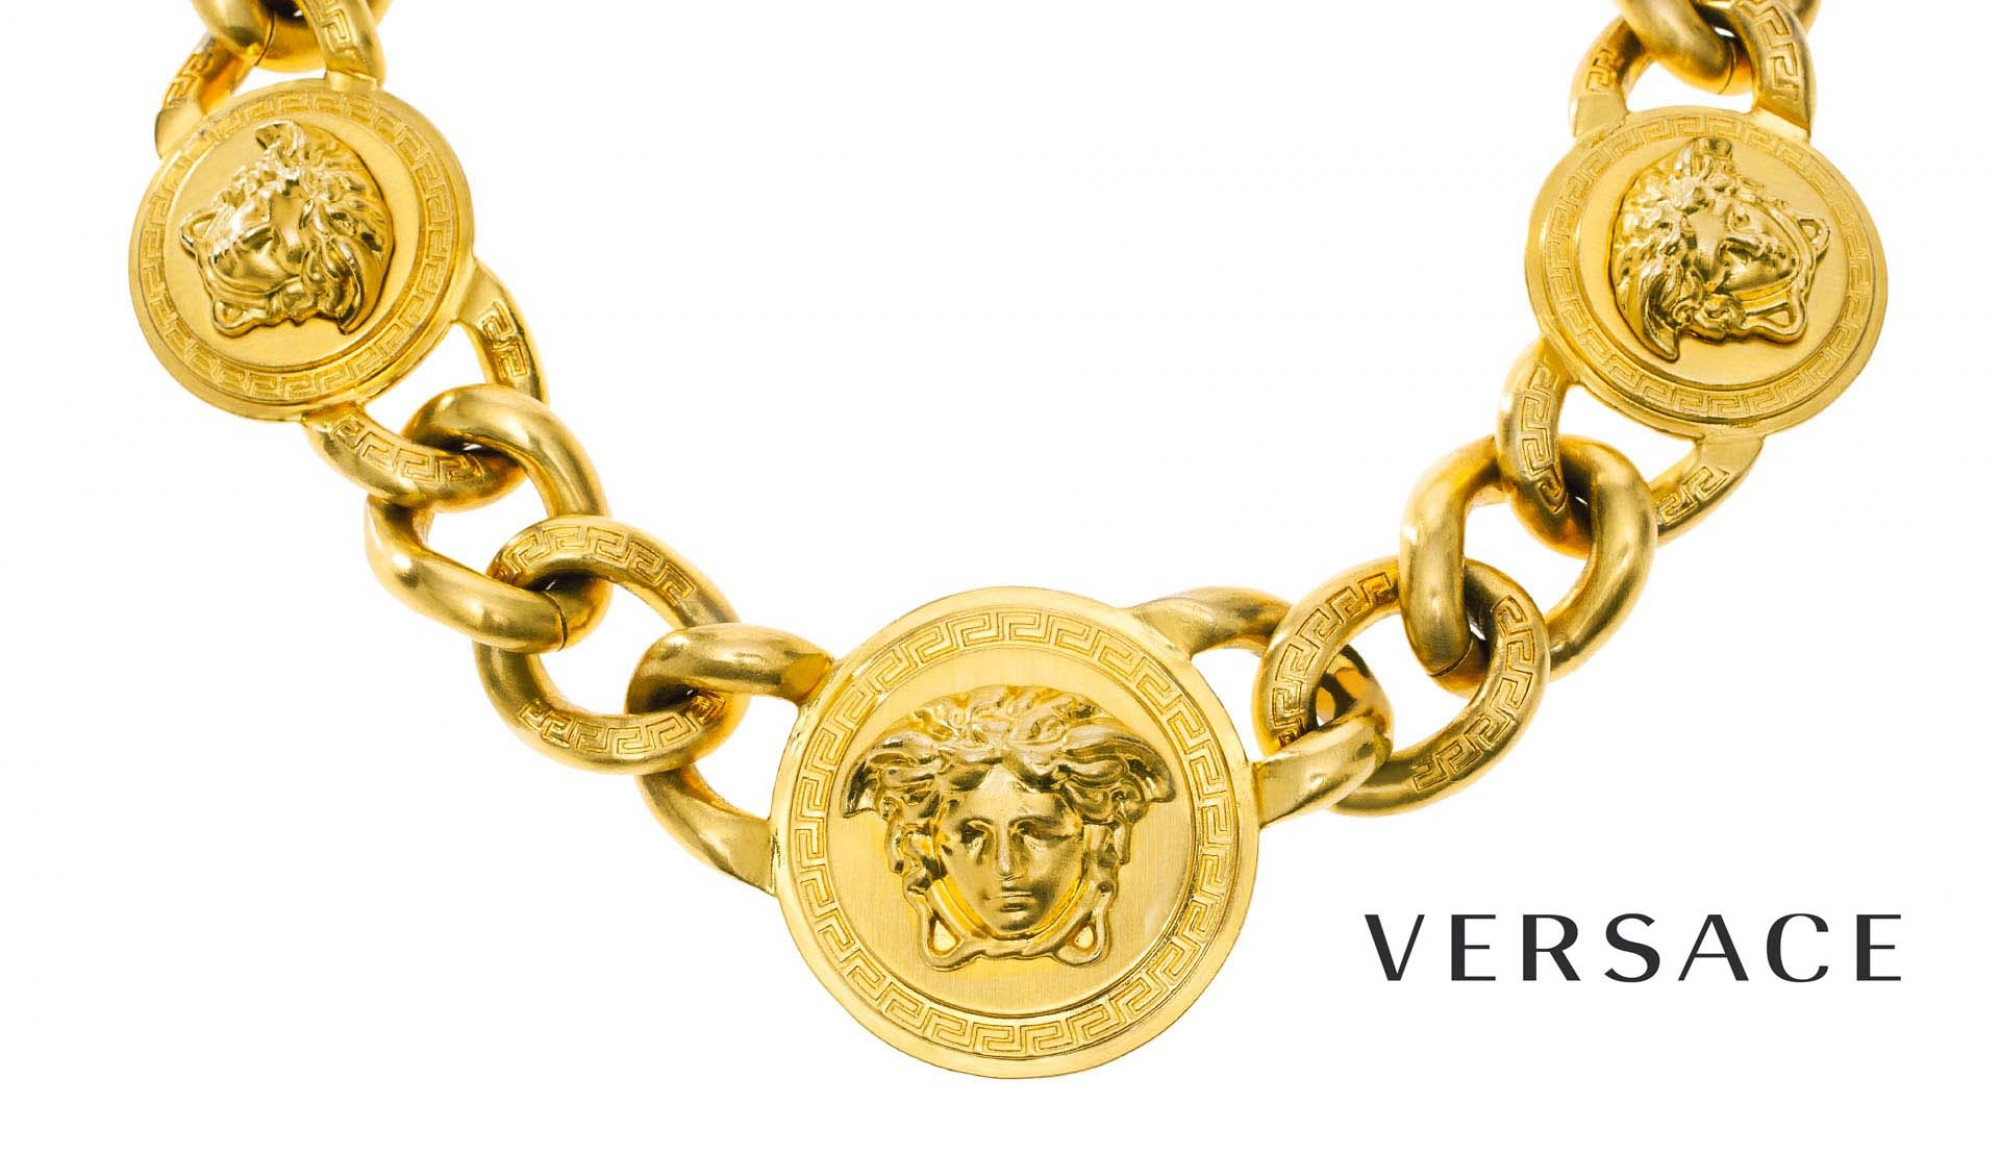 Versace Gold necklace with Medusa emblem